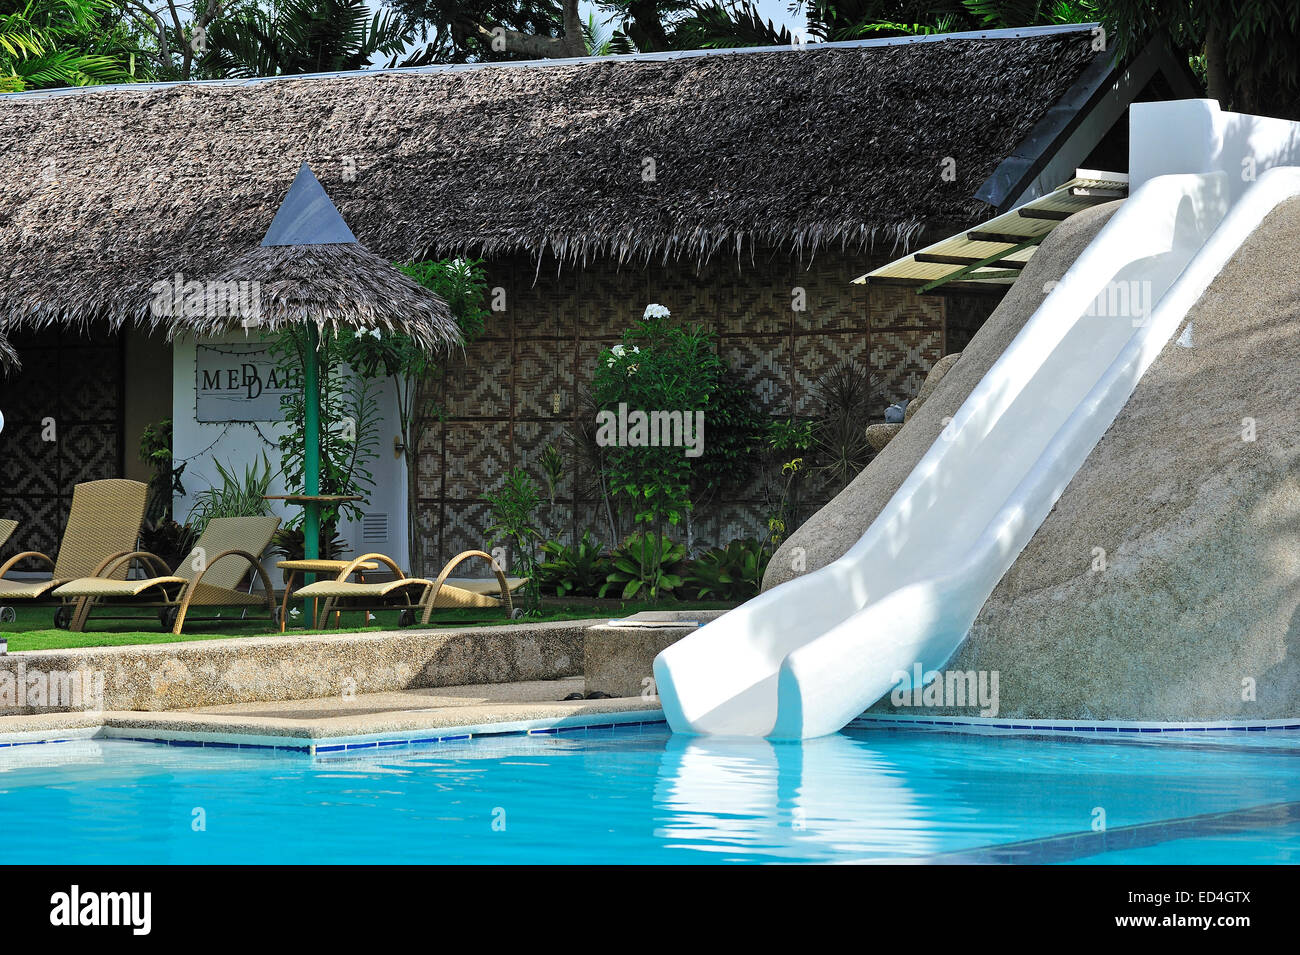 Gardens Grounds Swimming Pool Marcosas Cottages Hotel Moalboal Cebu Stock Photo Royalty Free